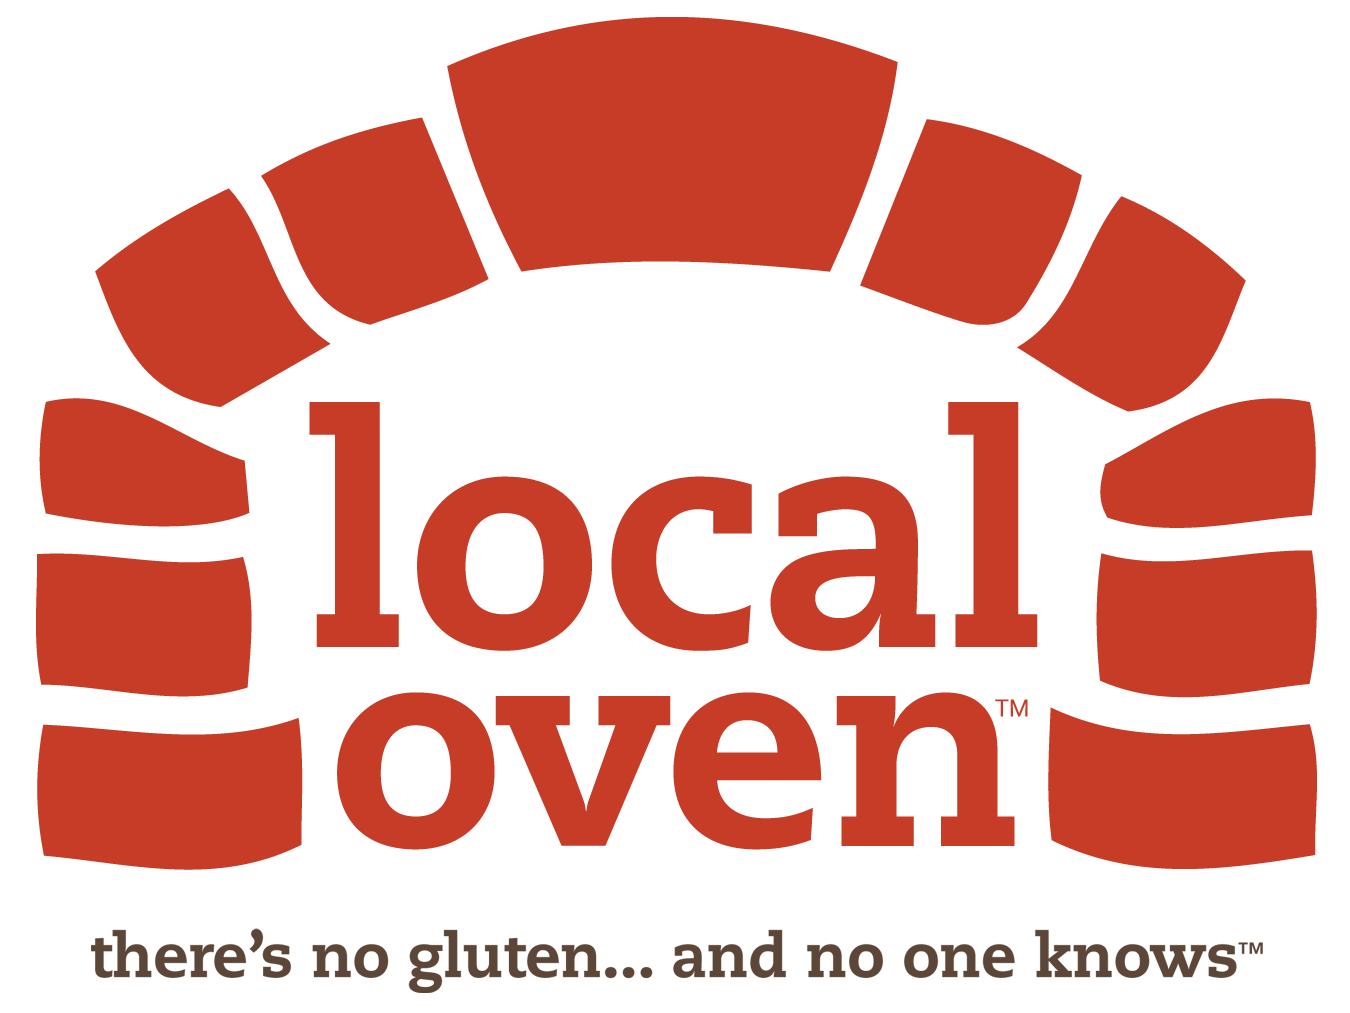 Local Oven logo